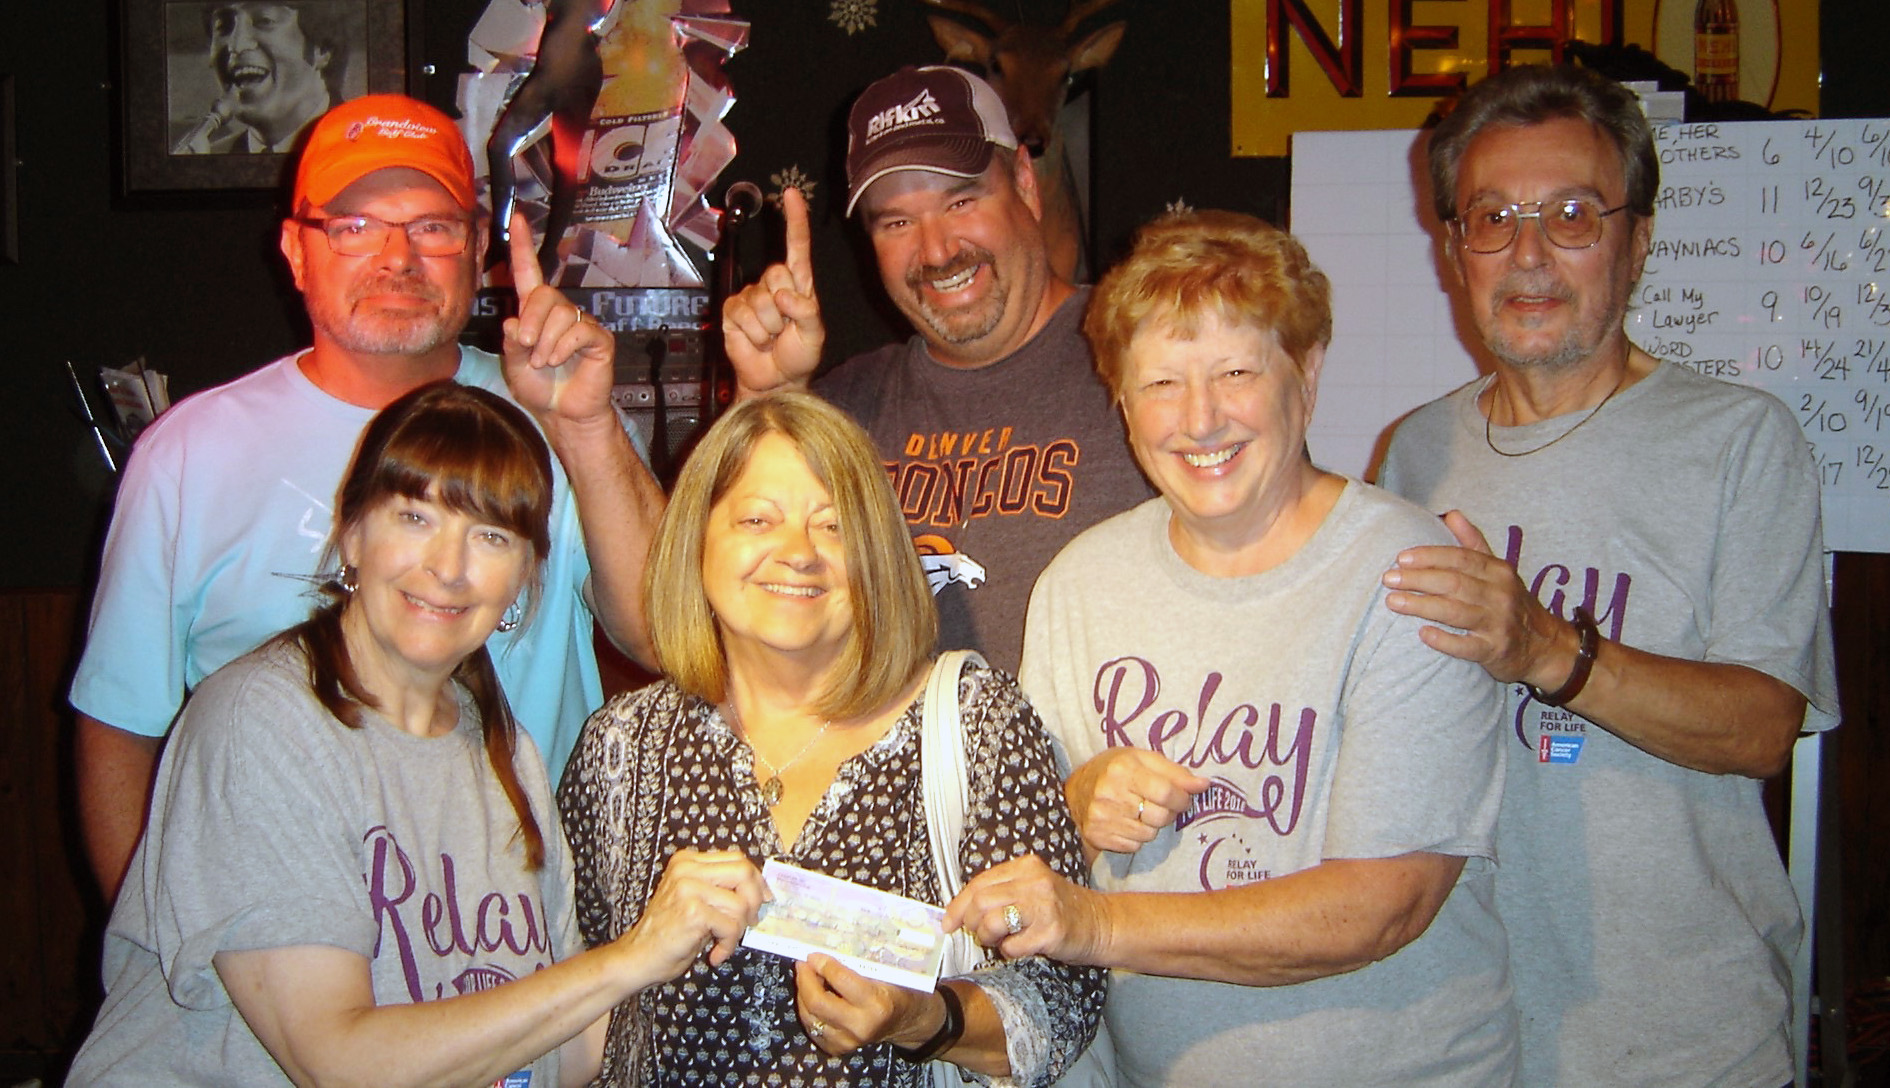 Andy Holland wayniacs' win relay for life trivia night on wager